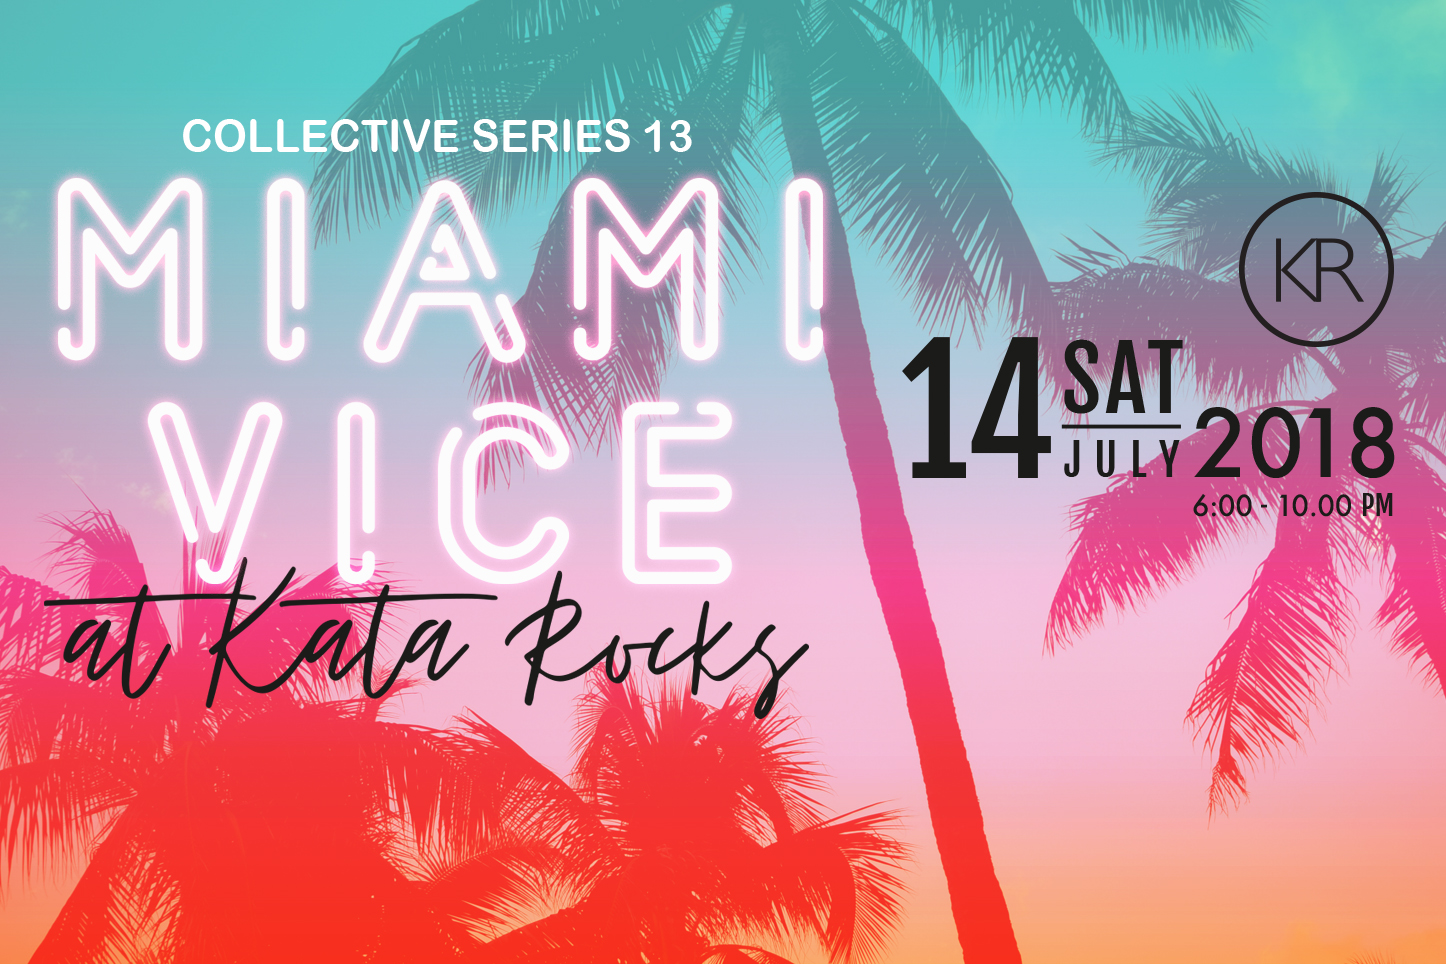 Kata-Rocks-Collective-Series-13-Miami-Vice